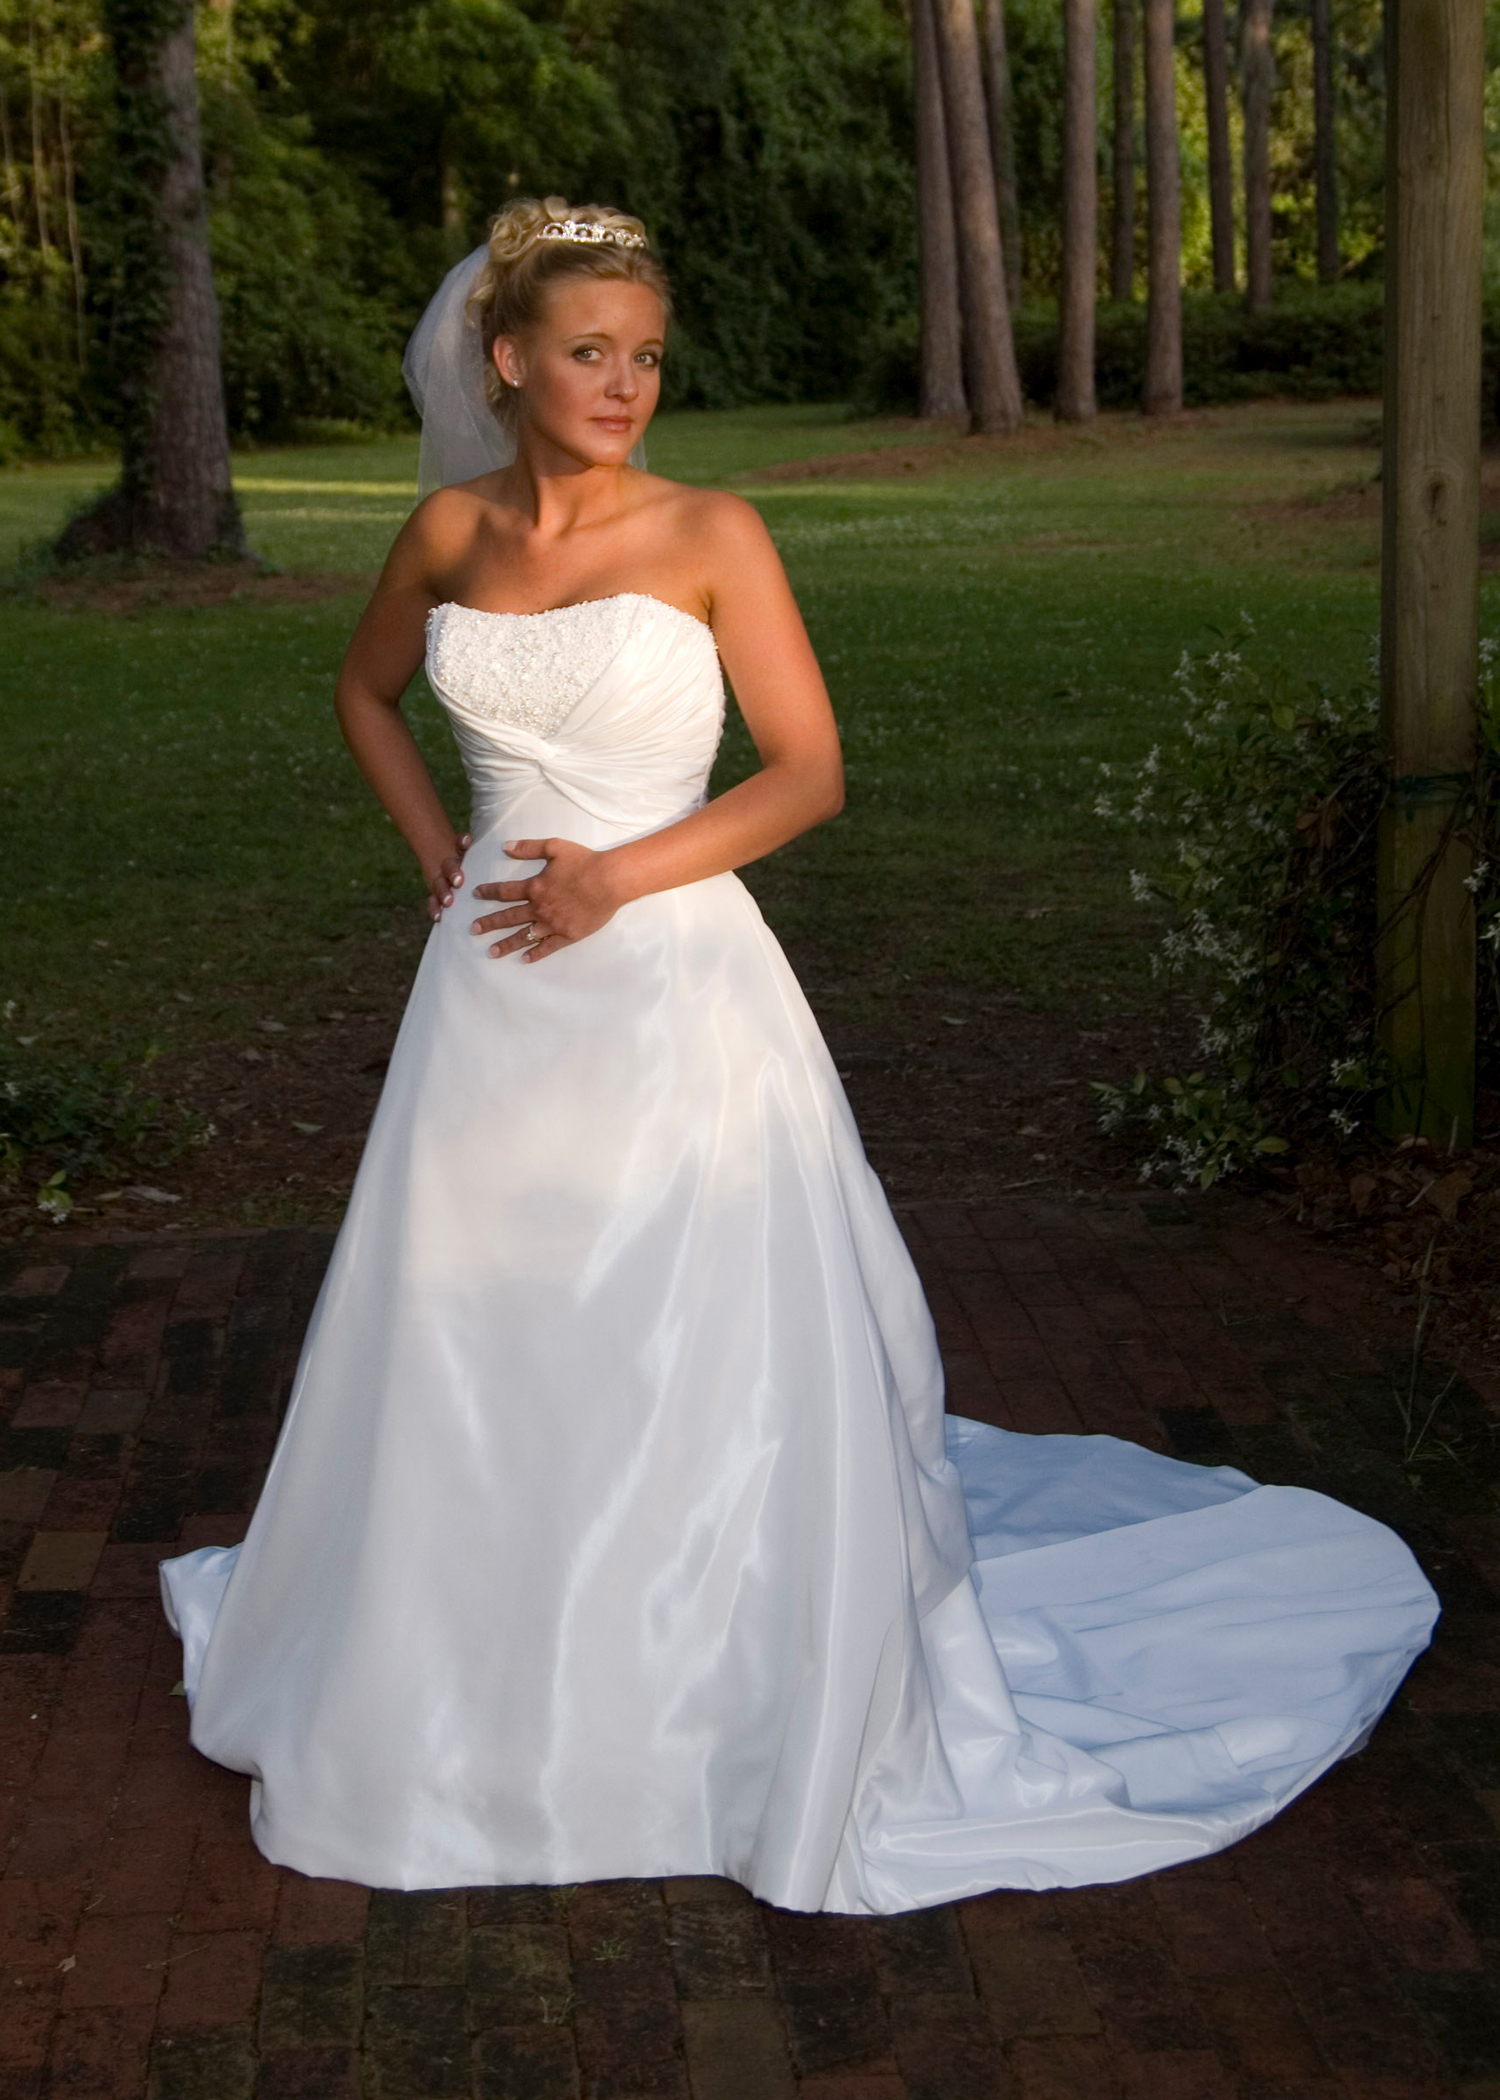 Bridal Portrait at Greenfield Lake, NC.